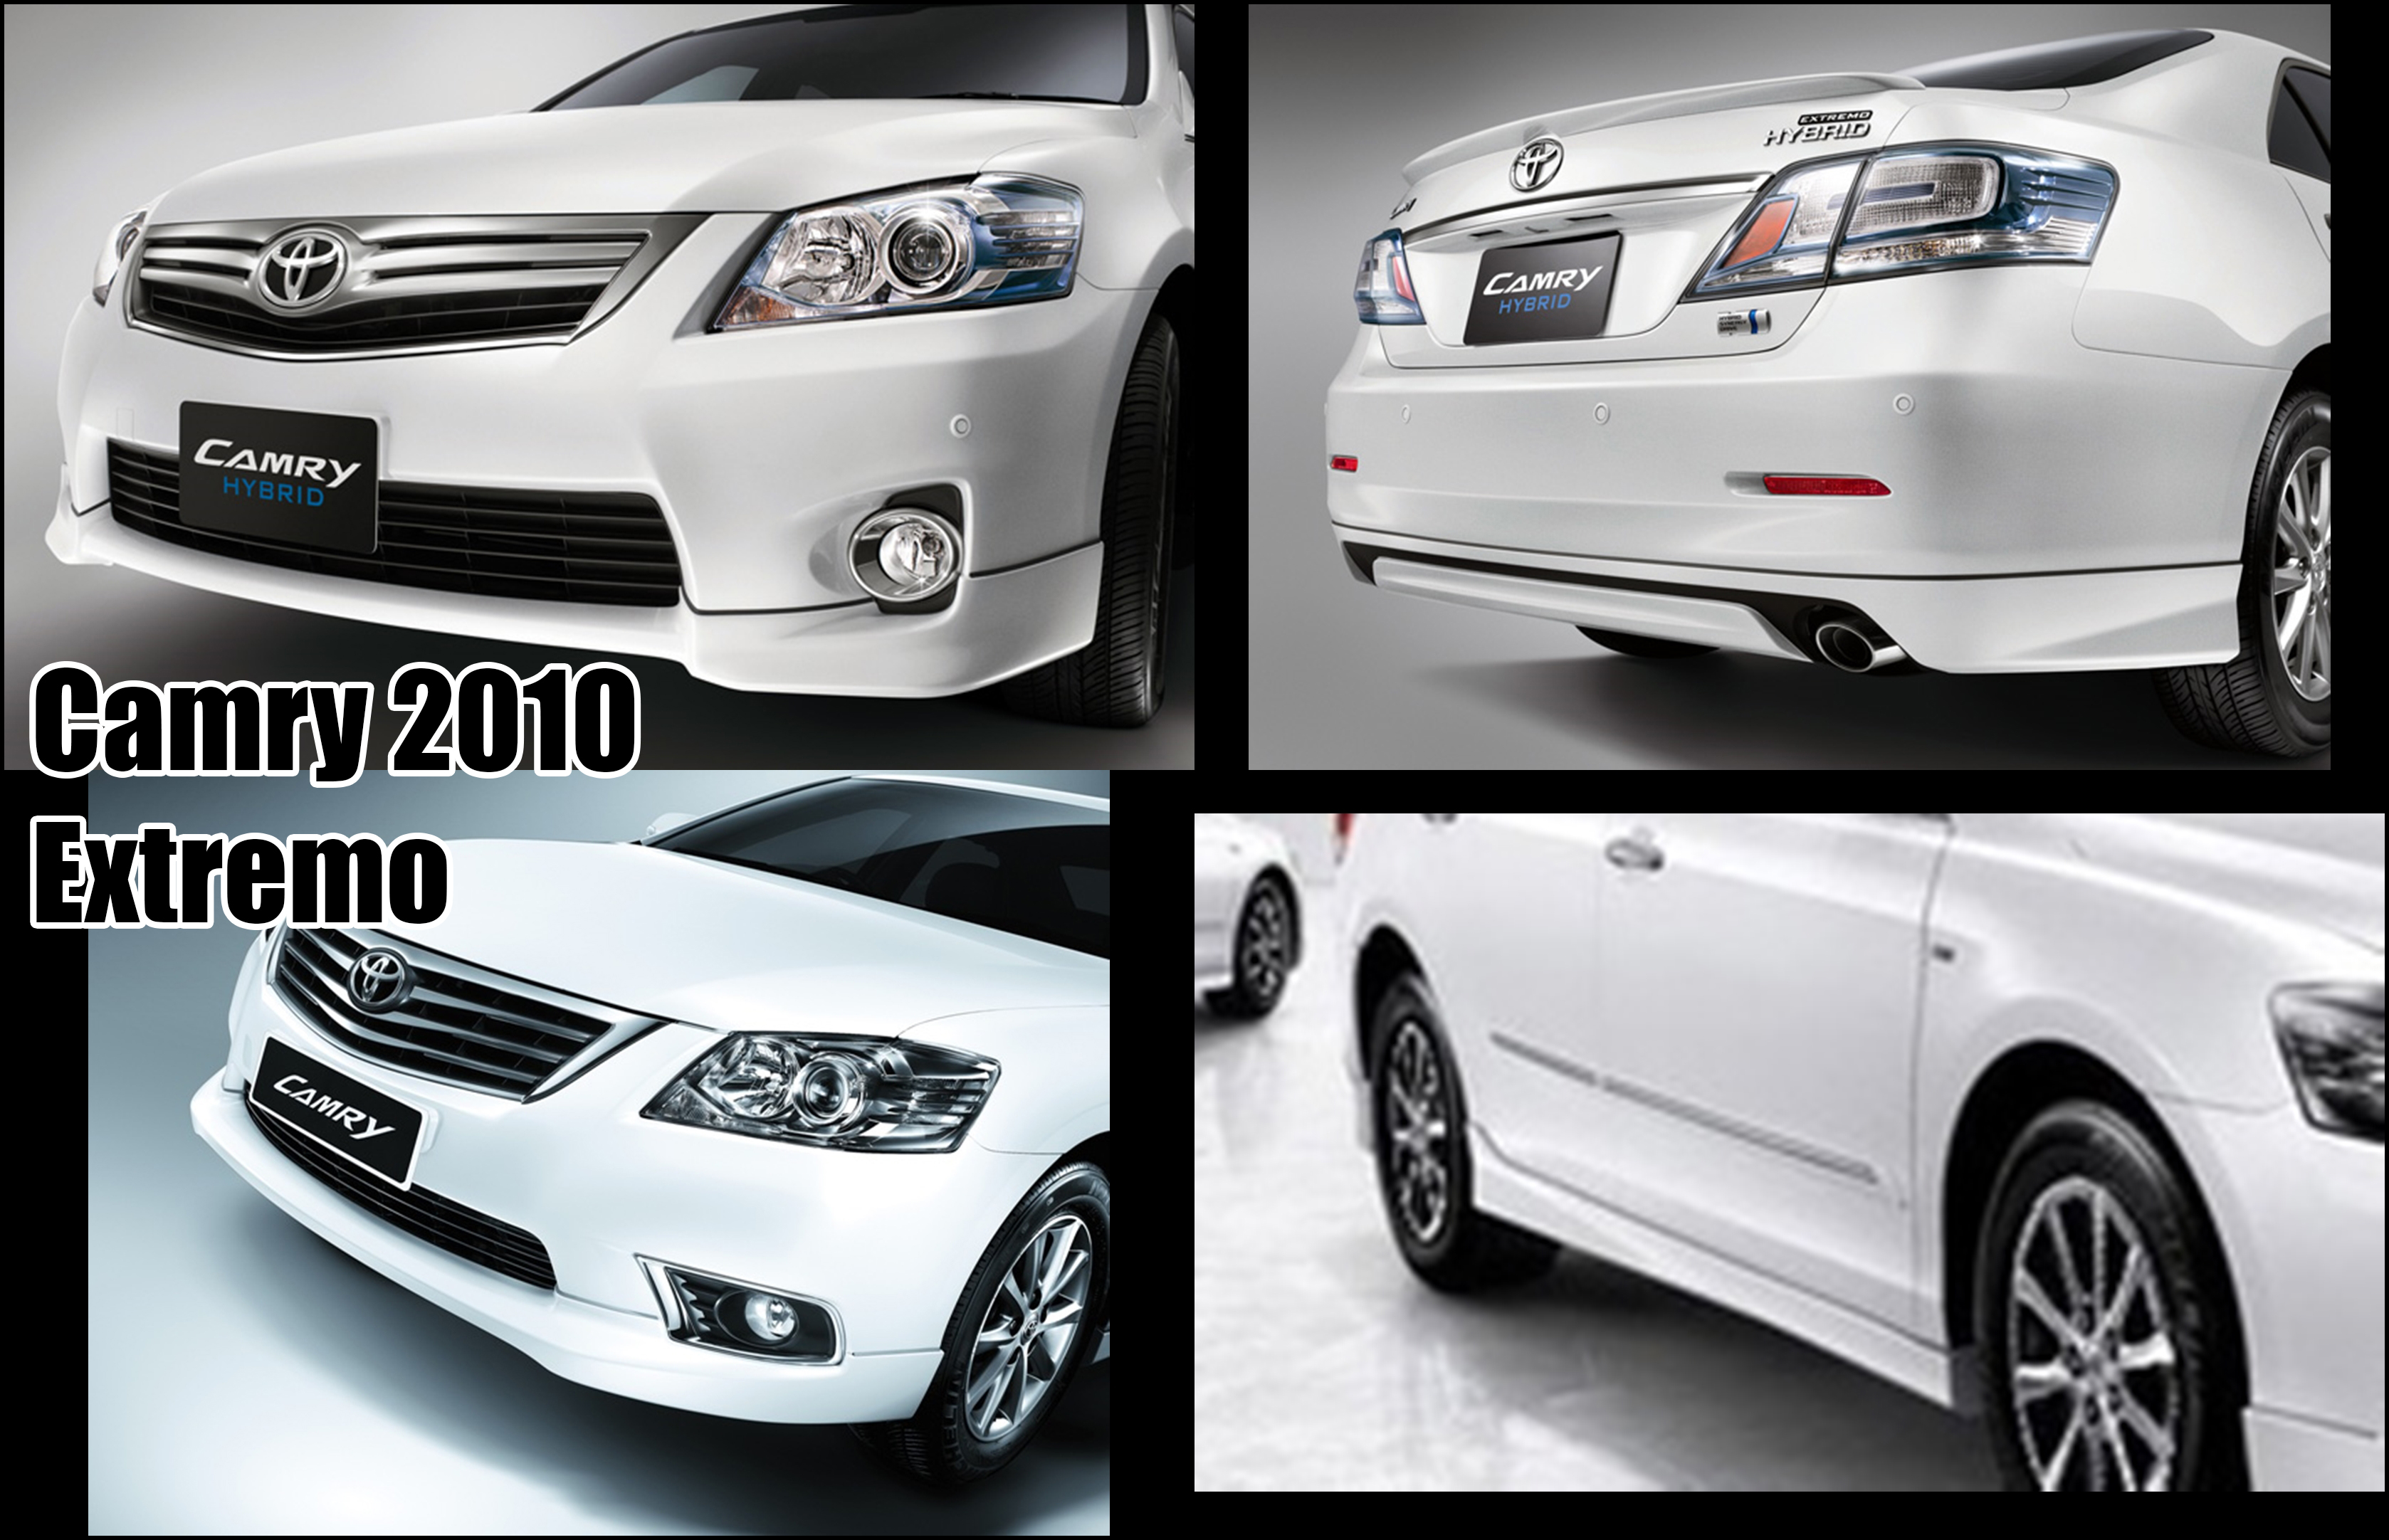 Camry 10 - Extremo